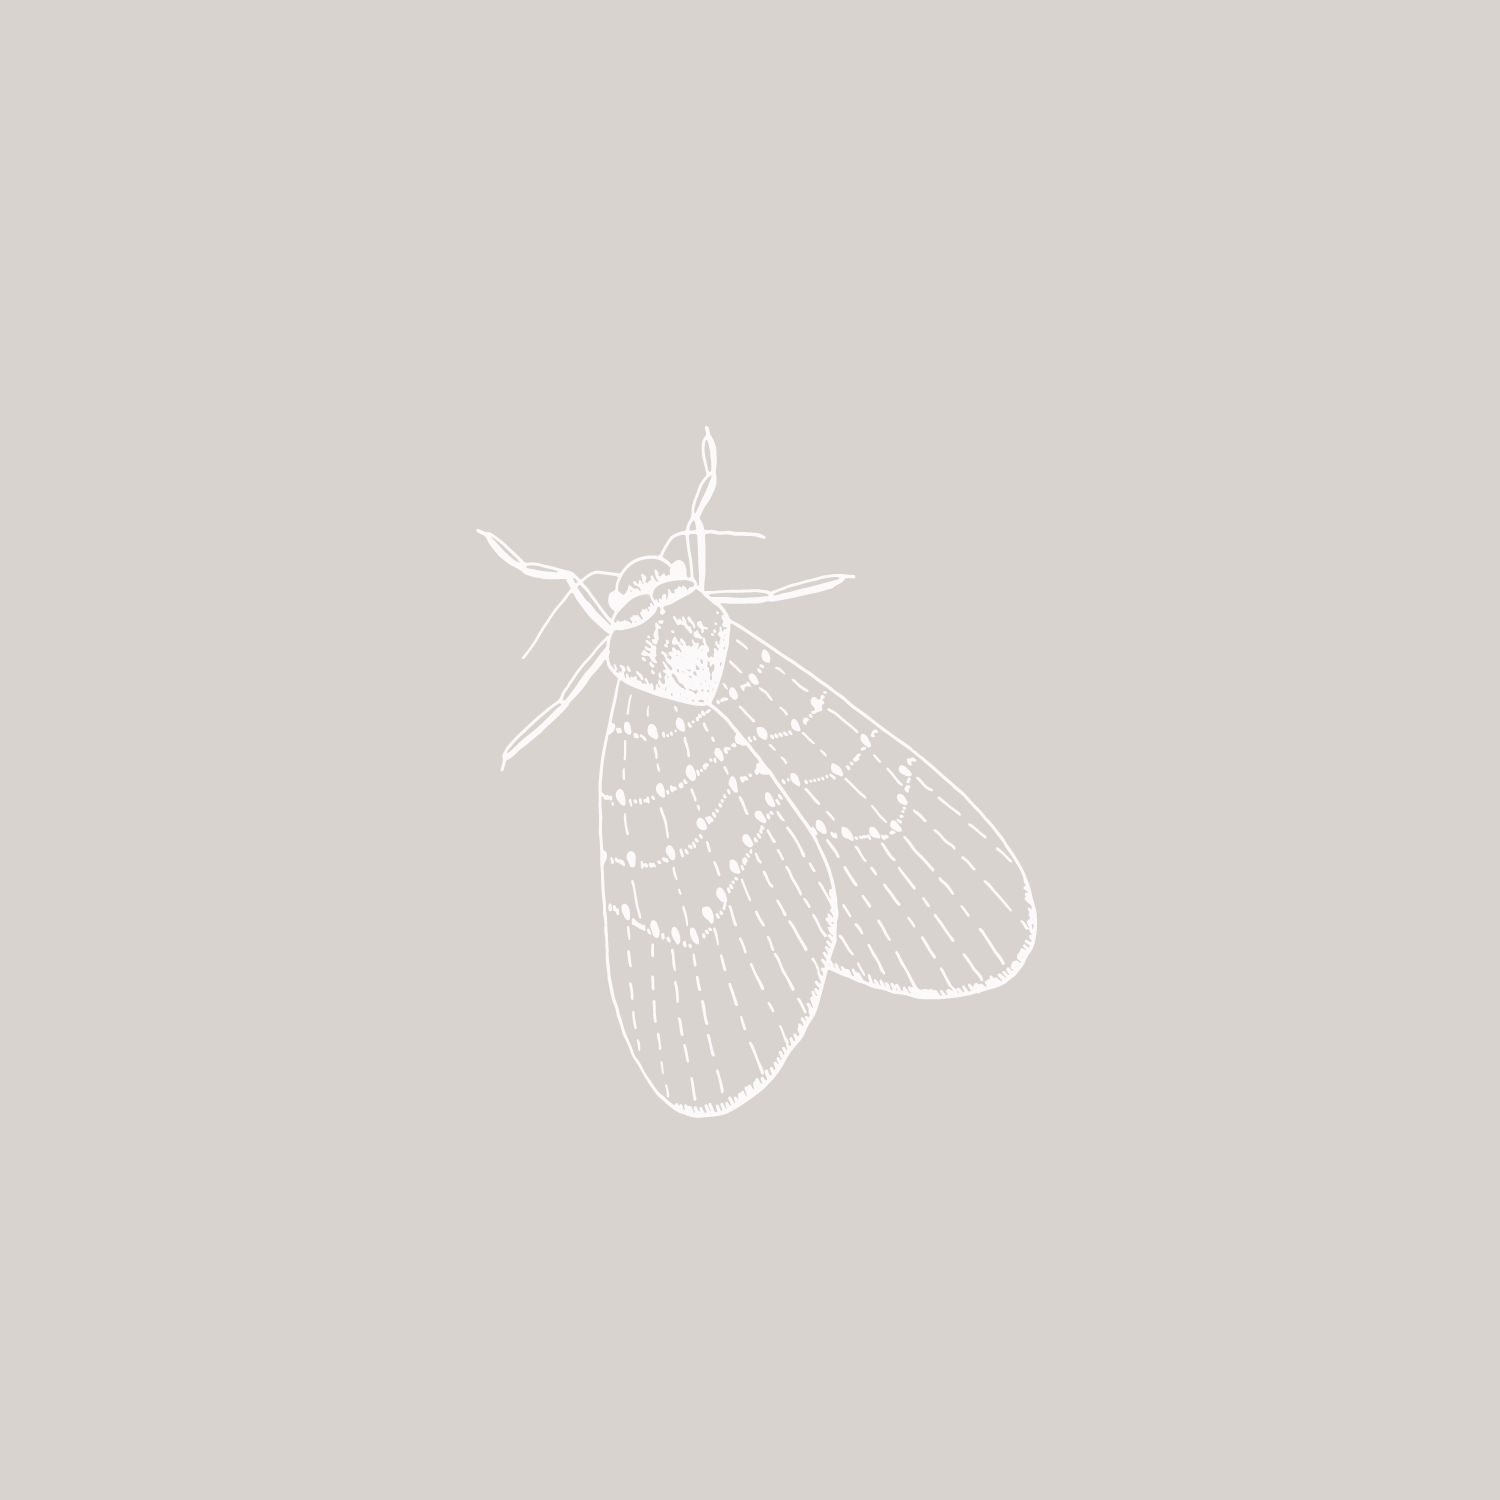 Moth illustration #the100dayproject by Bea & Bloom Creative Design Studio